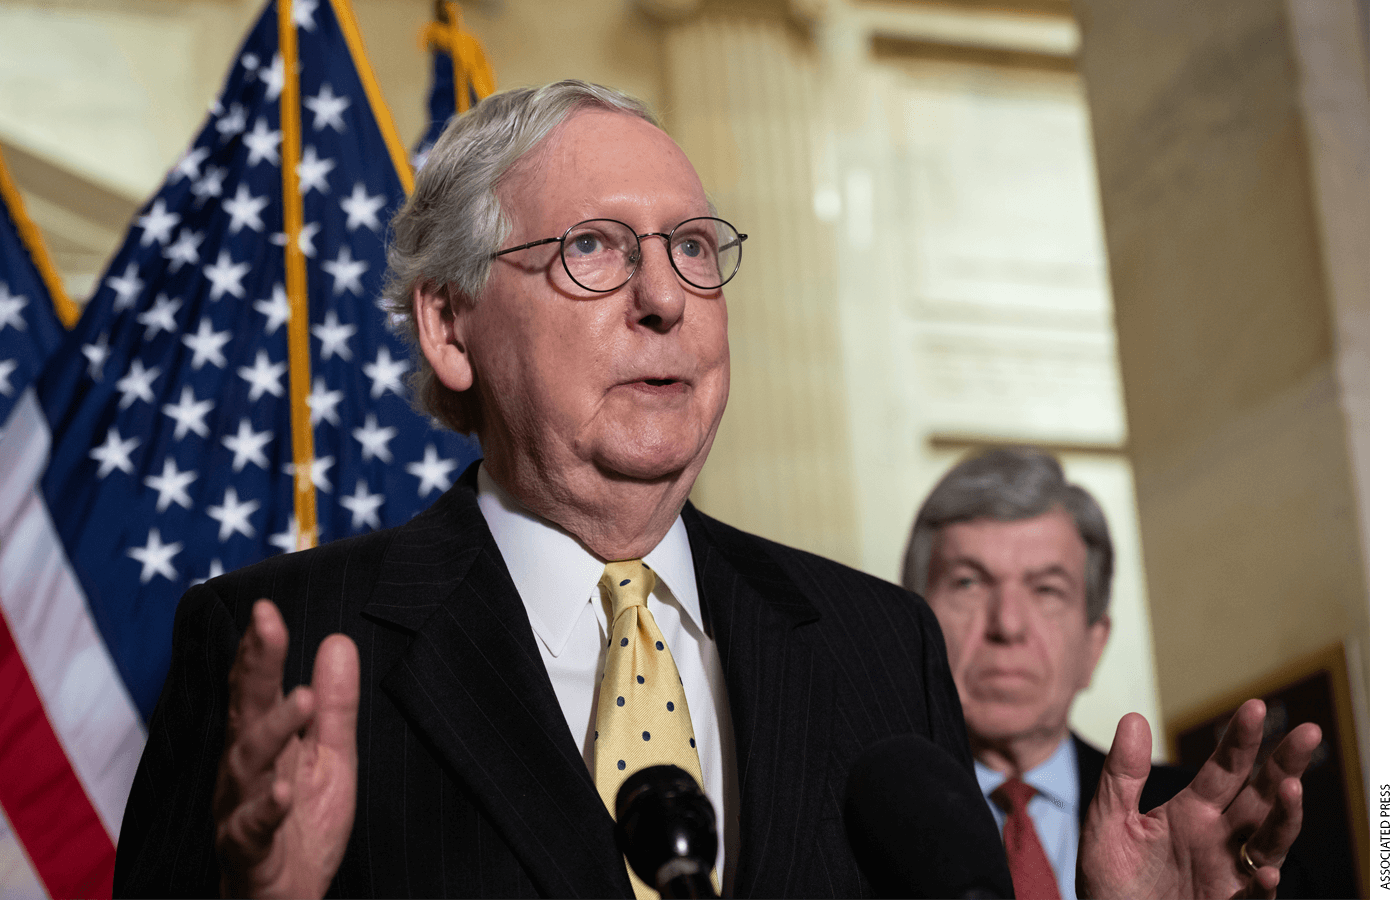 Photo of Sen. Mitch McConnell speaking from behind a podium